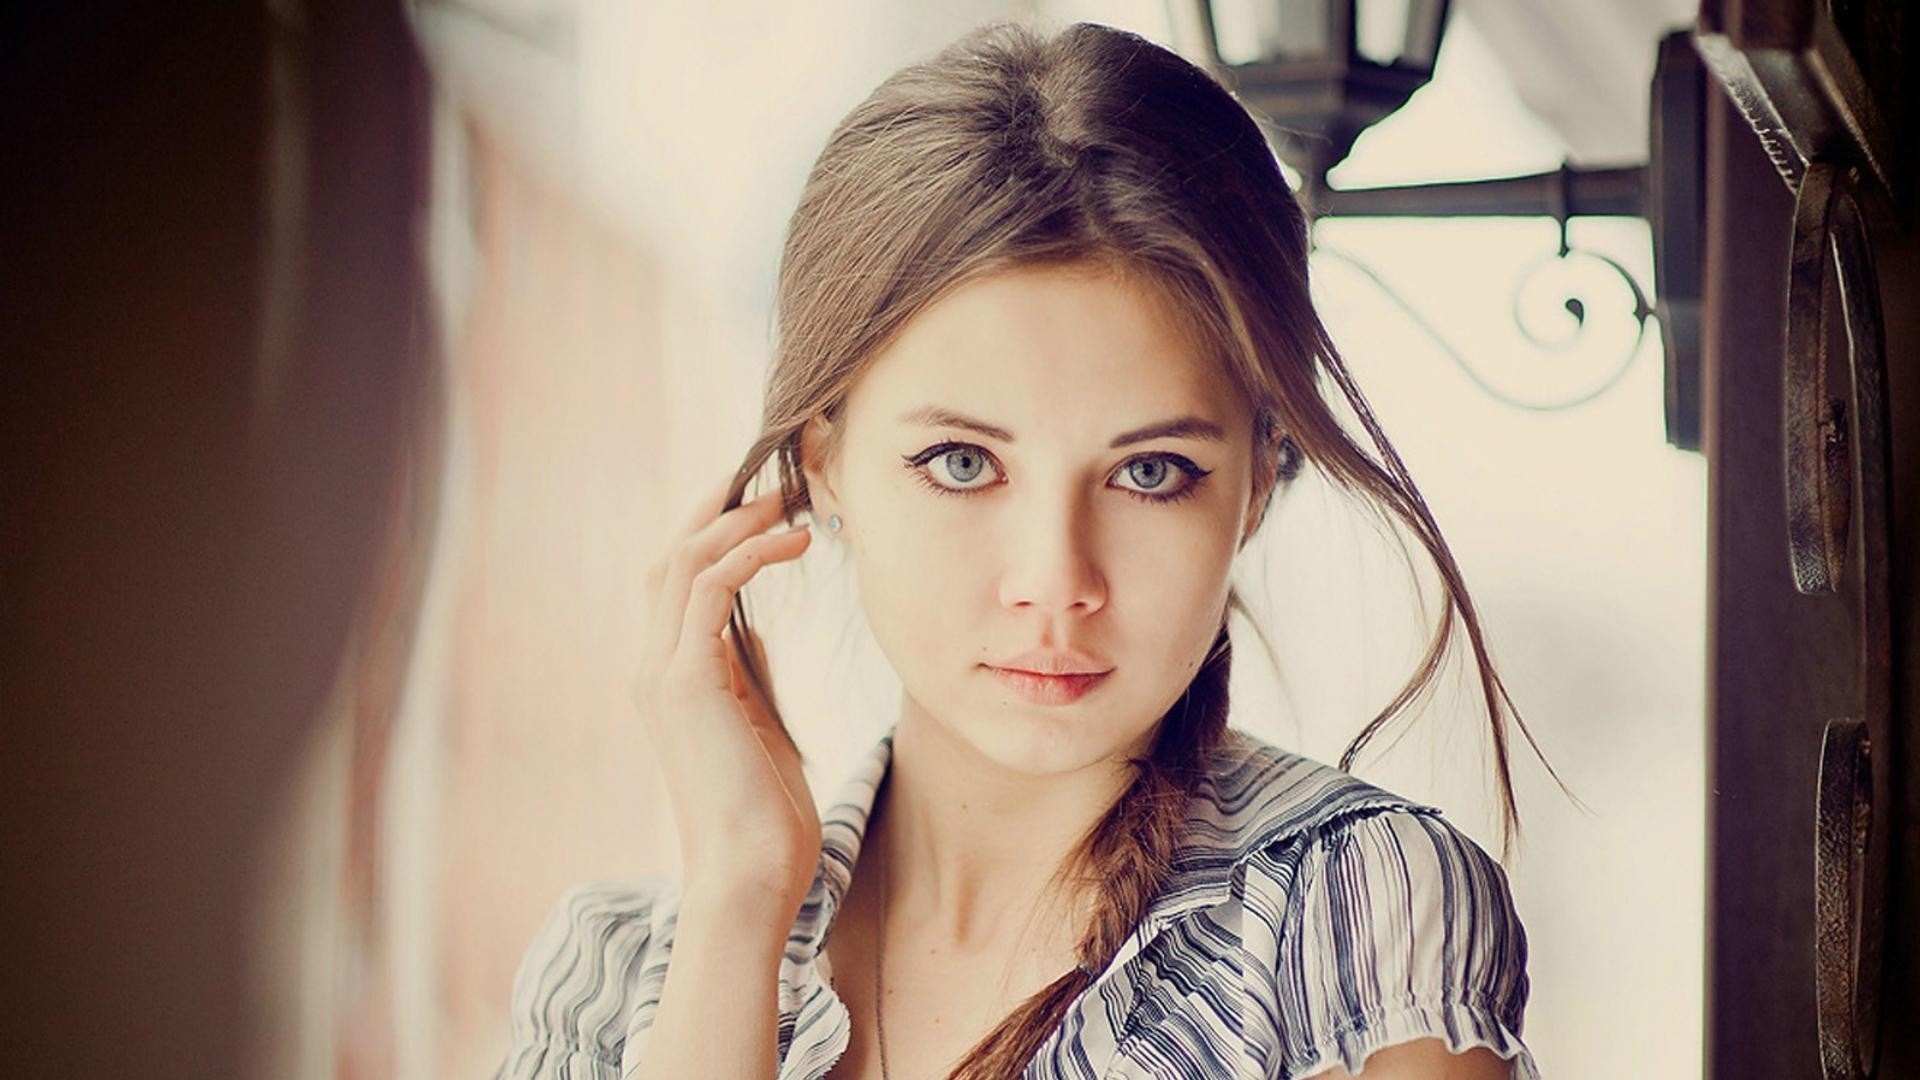 Pretty Girls Pics wallpapers (59 Wallpapers)